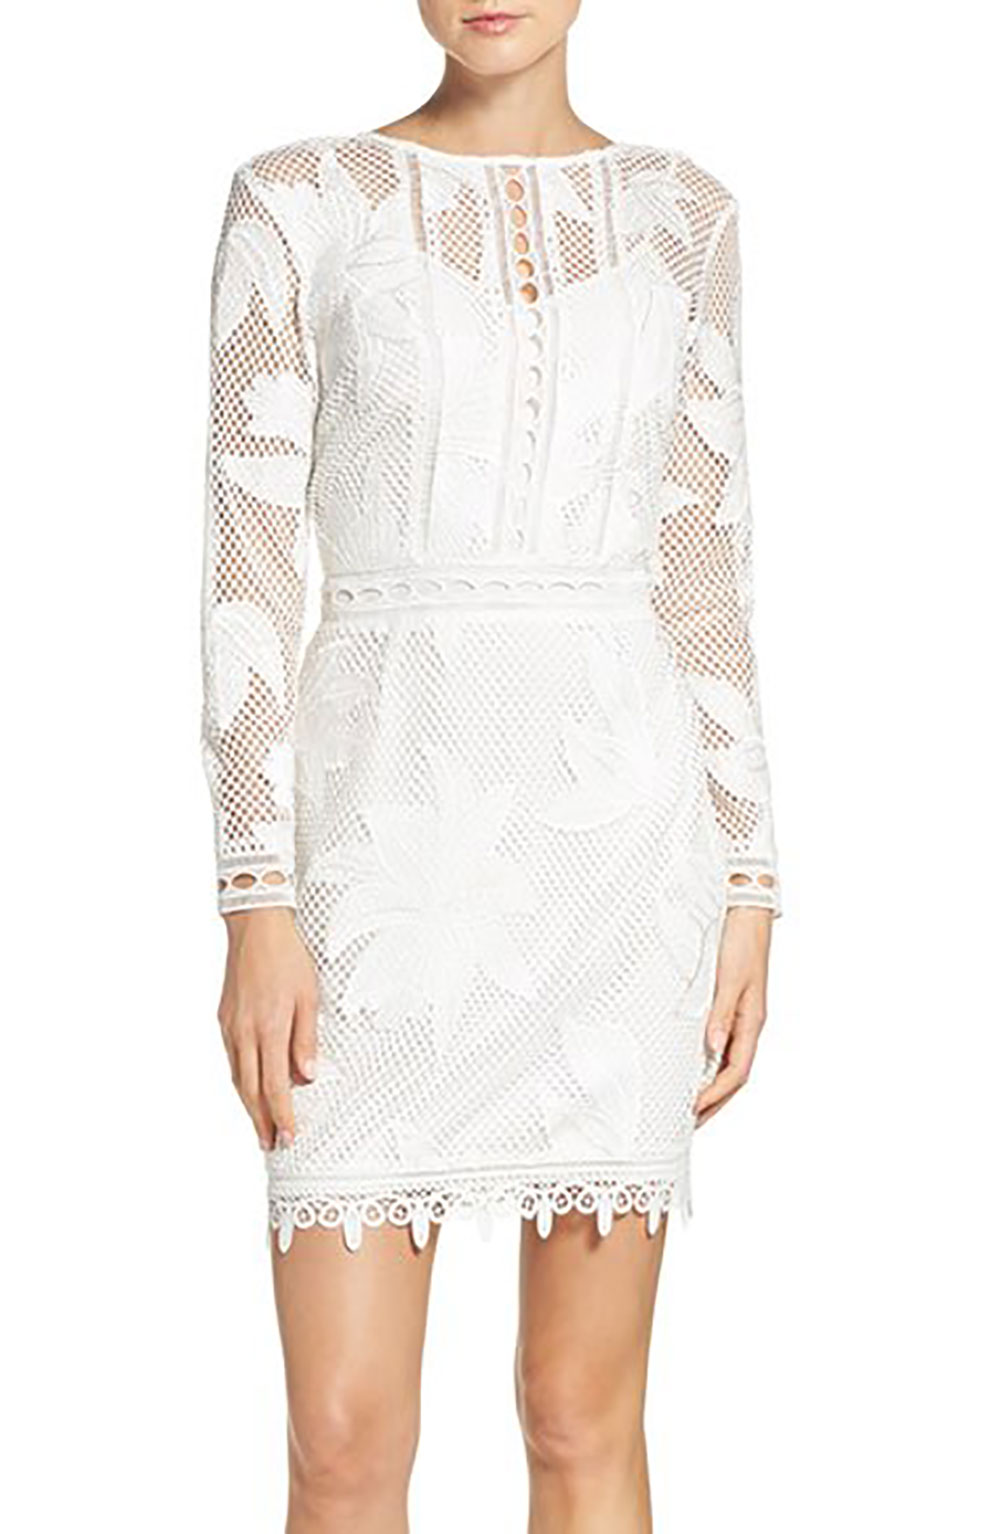 White Floral Lace Sheath Dress